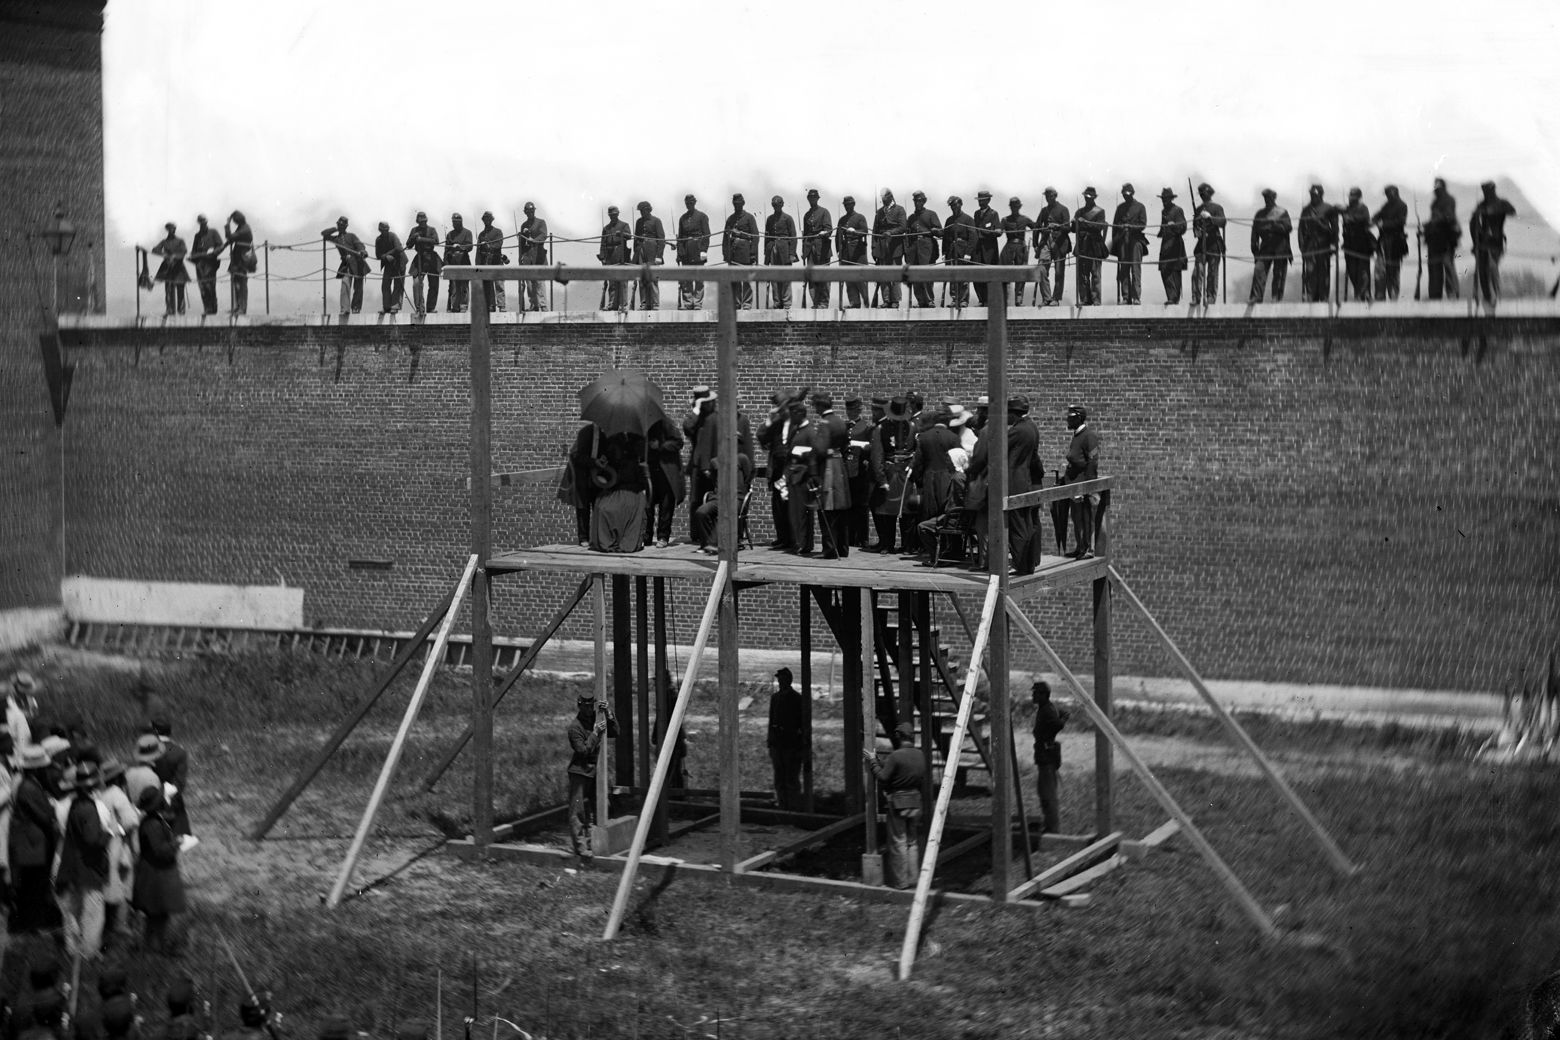 The four condemned Lincoln assassination conspirators (Mary Surratt, Lewis Payne, David E. Herold, George A. Atzerodt), with officers and others on the scaffold, with guards on the wall, in 1865. (Courtesy Library of Congress)